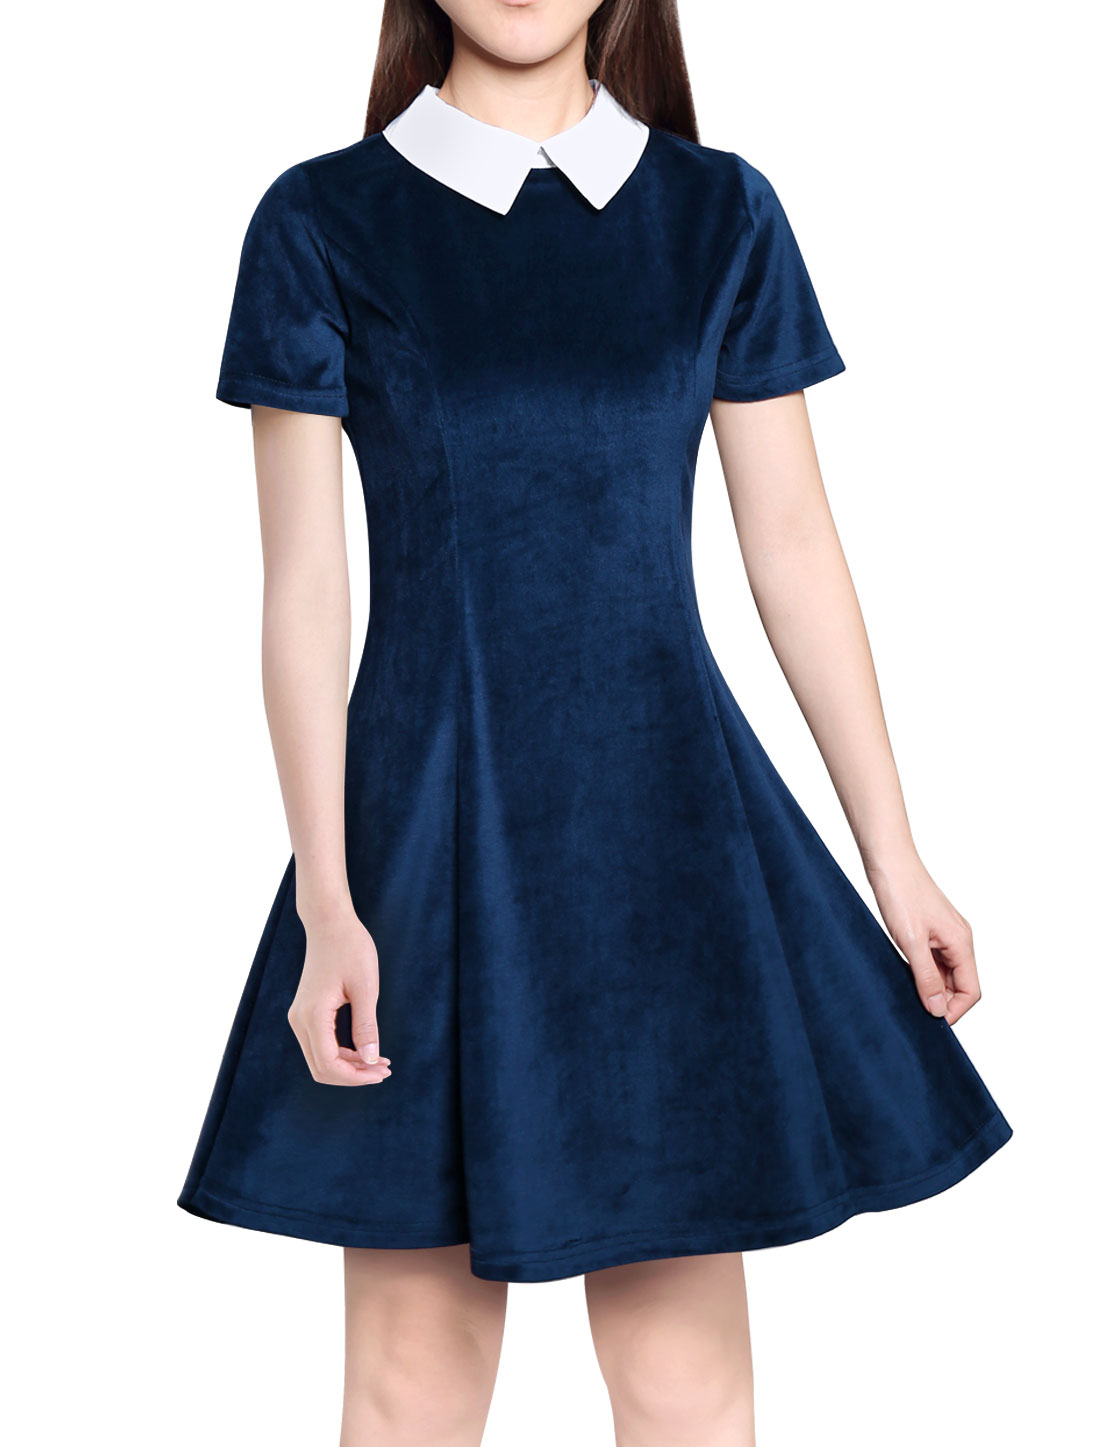 Women Peter Pan Collar Short Sleeves Flare Dress Blue L